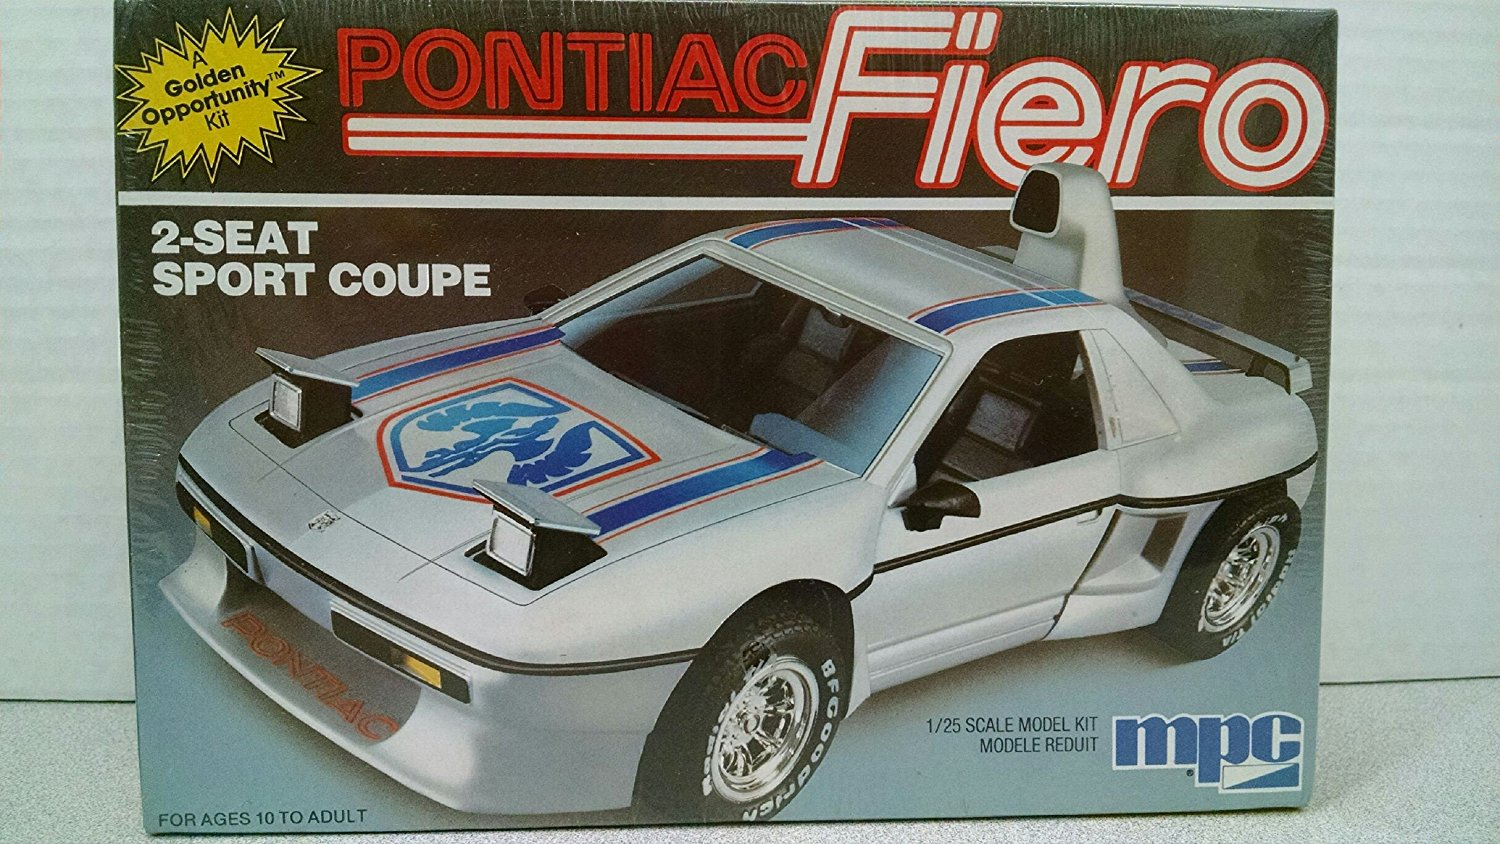 MPC 6309 '86 Pontiac Fiero 2-Seat Sport Coupe 1/25 Scale Plastic Model Kit-Requires Assembly